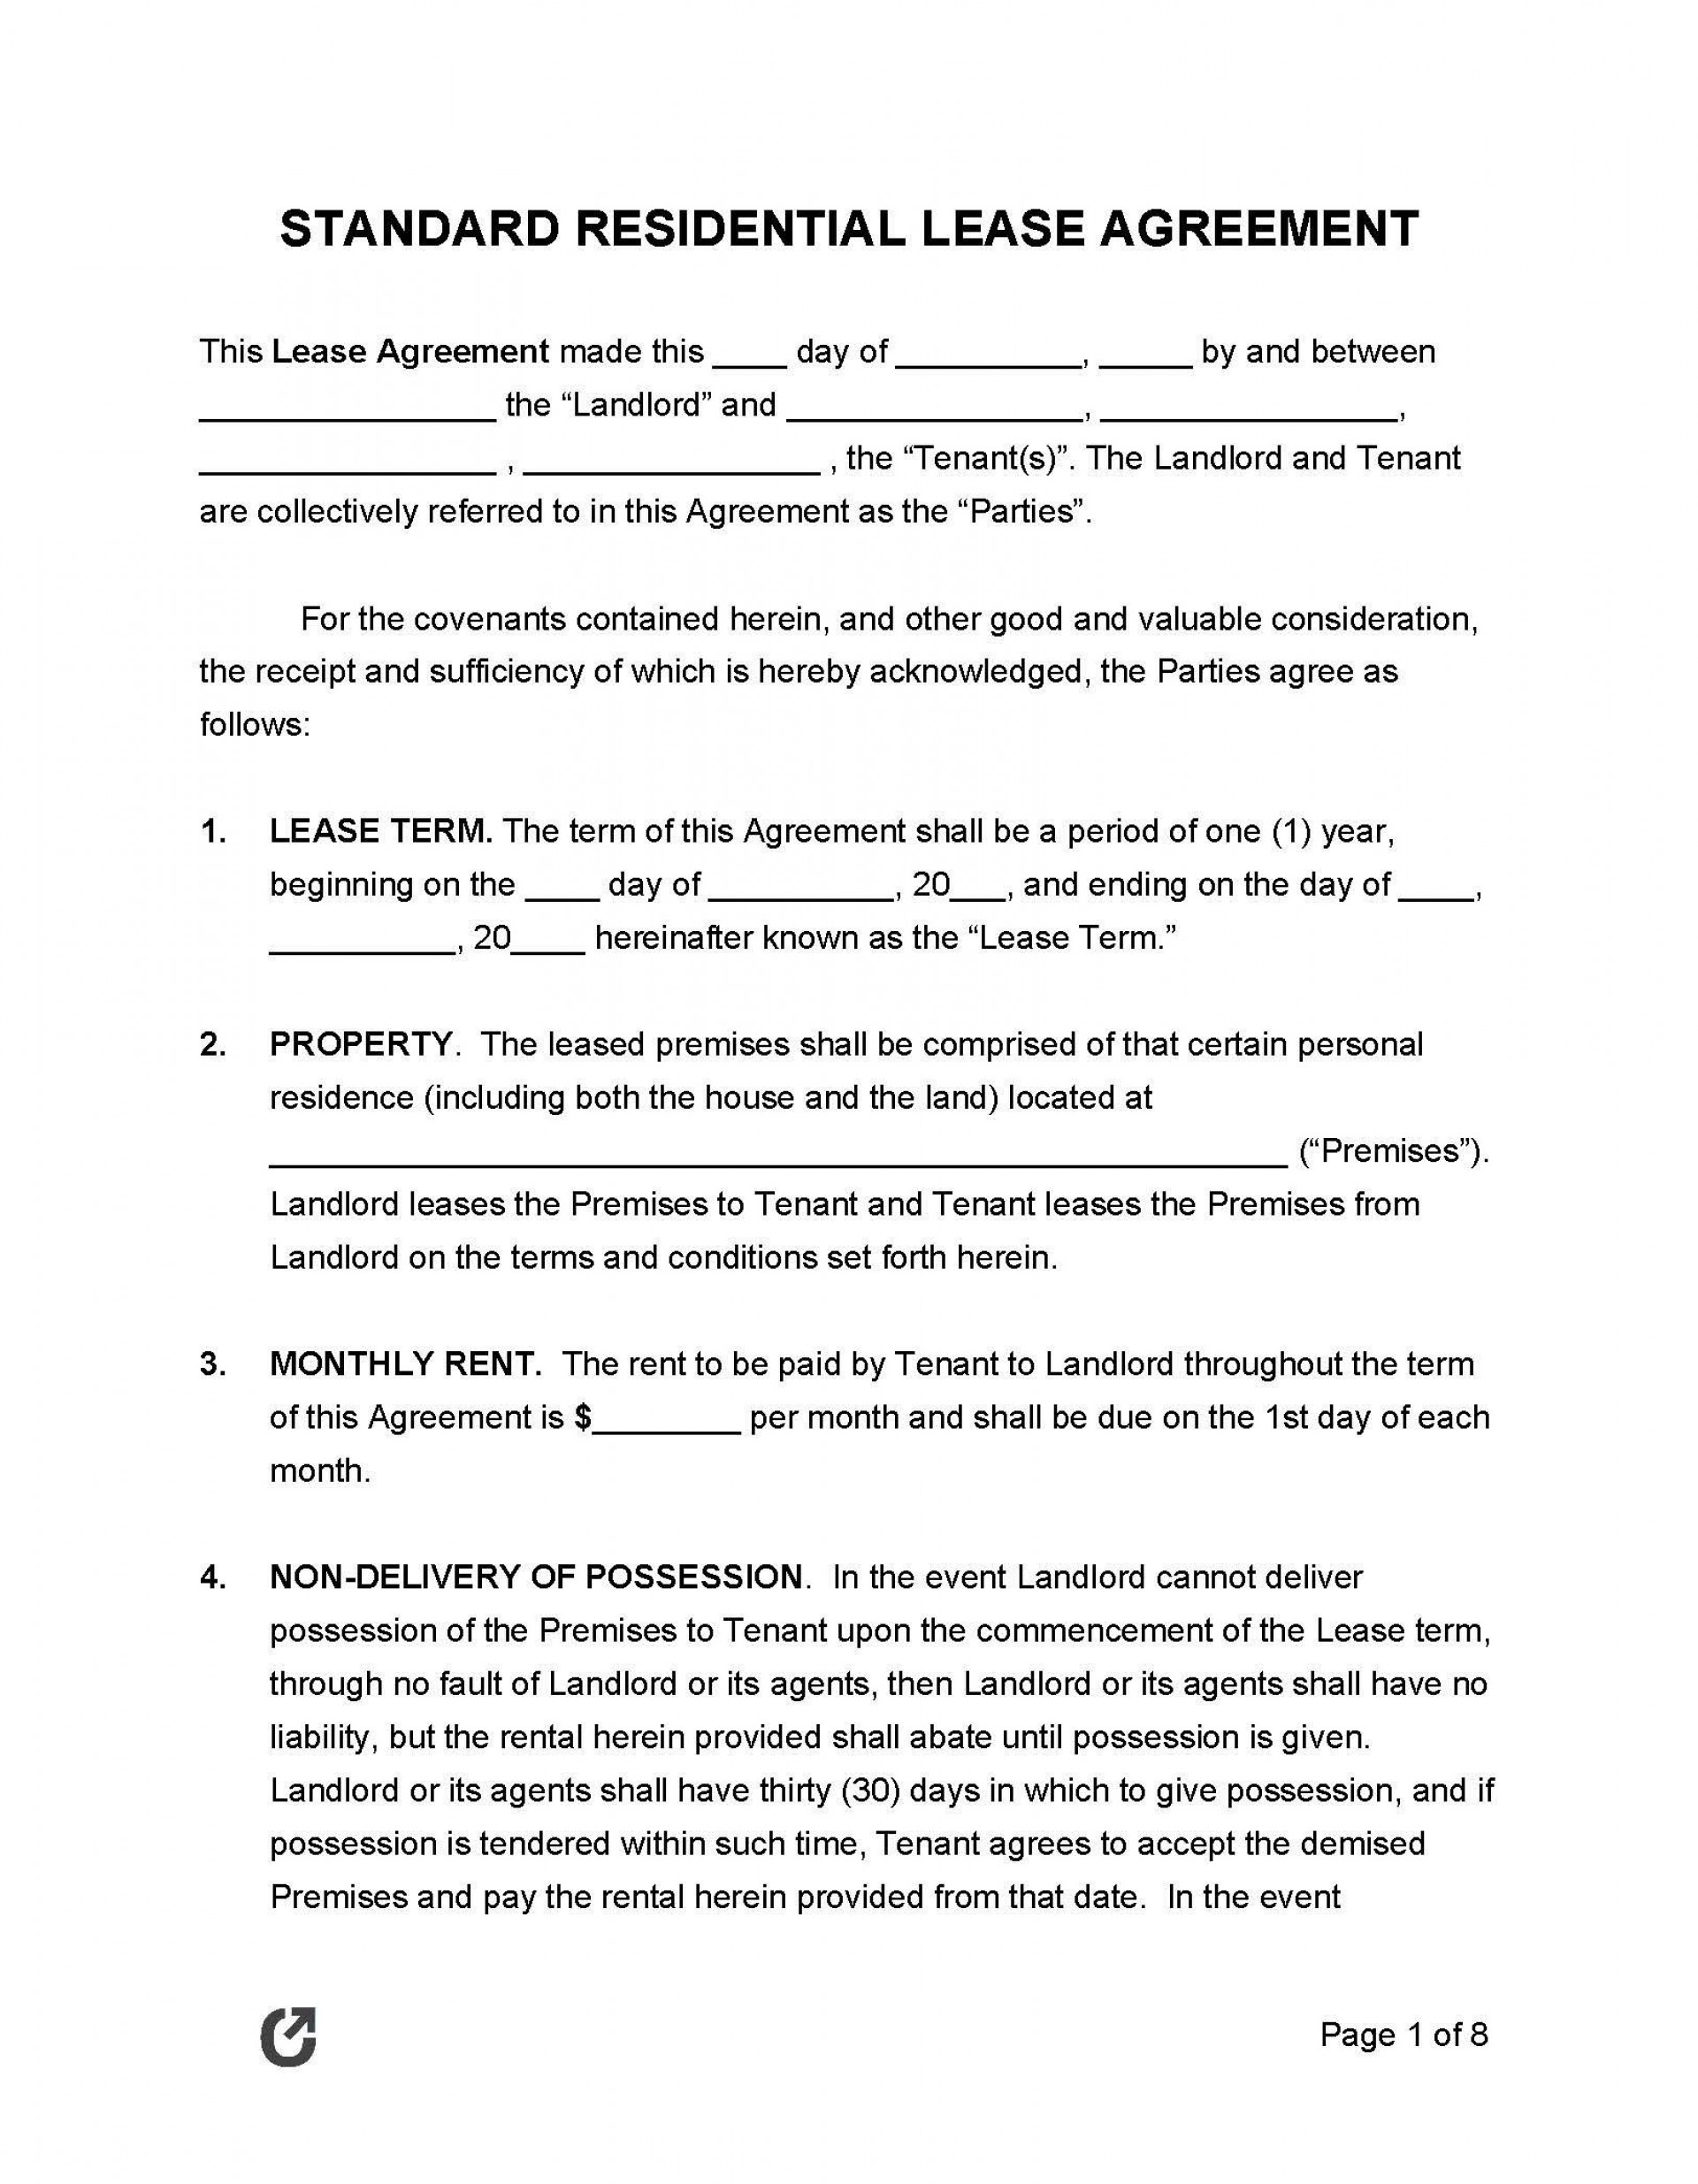 009 Fascinating Rental Agreement Template Doc Image  Tenancy Uk Word Document1920